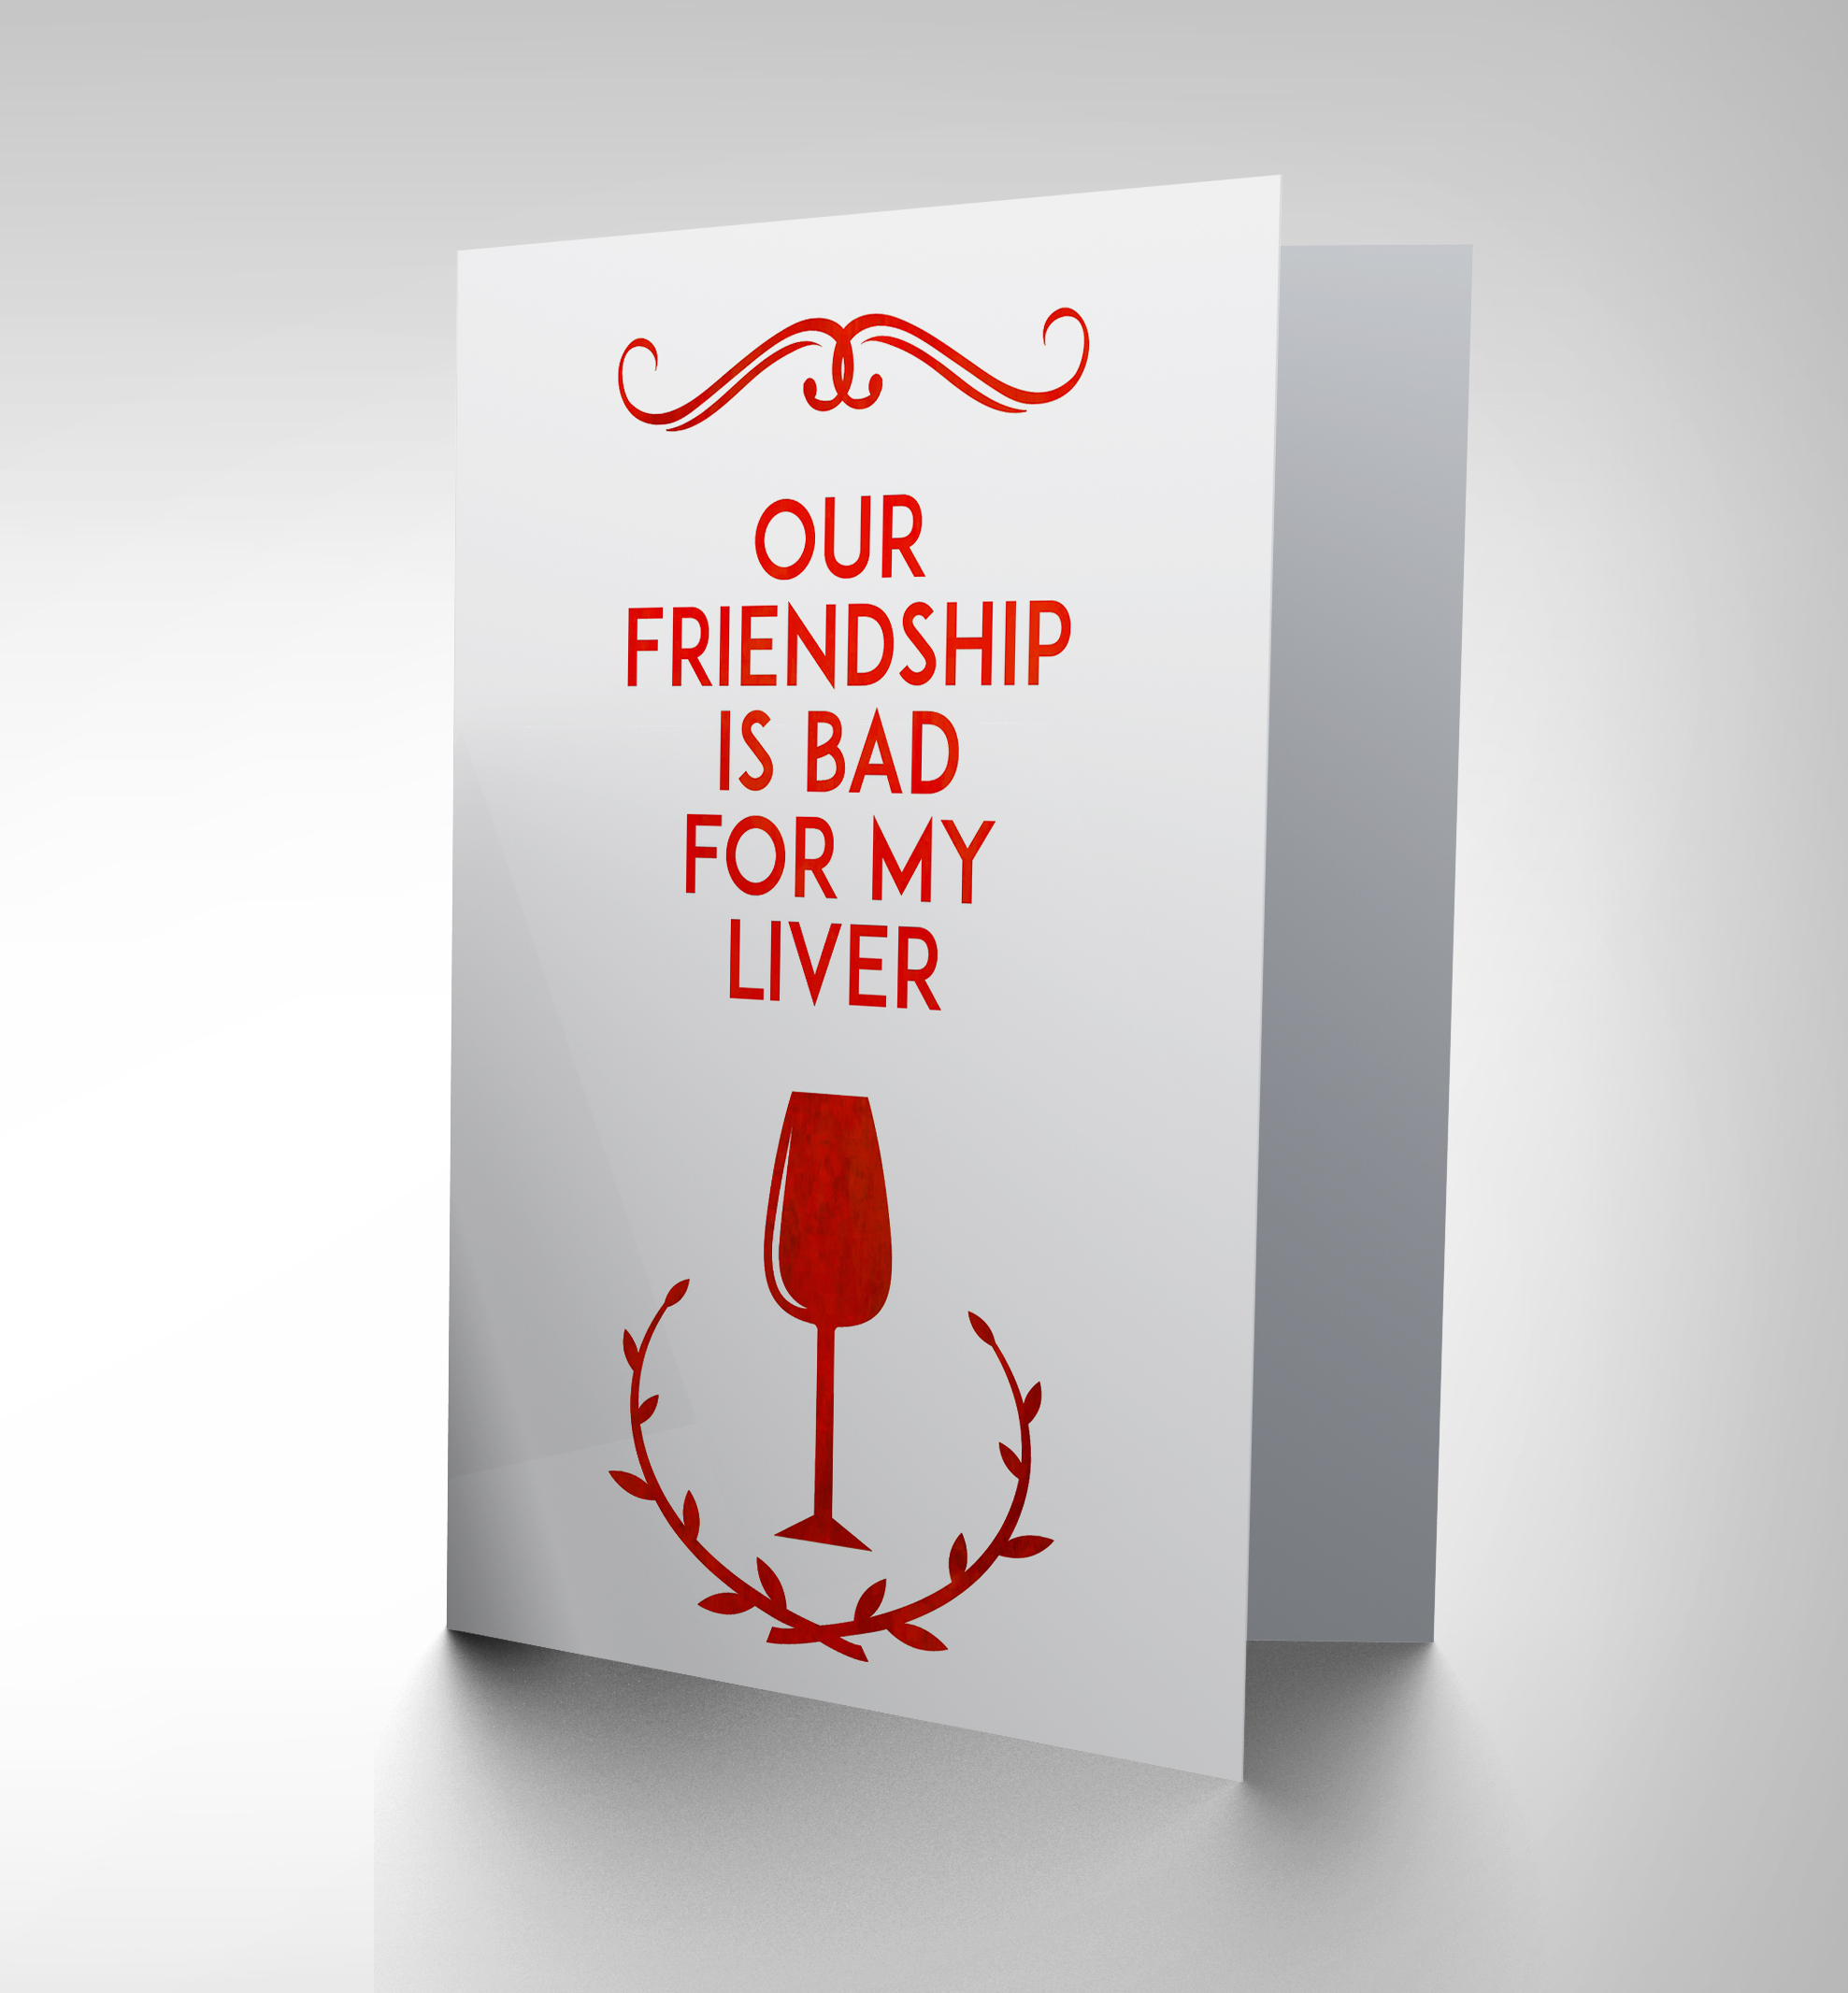 NEW FRIEND WINE BAD LIVER FUNNY ART GREETINGS GREETING CARD GIFT CP1573